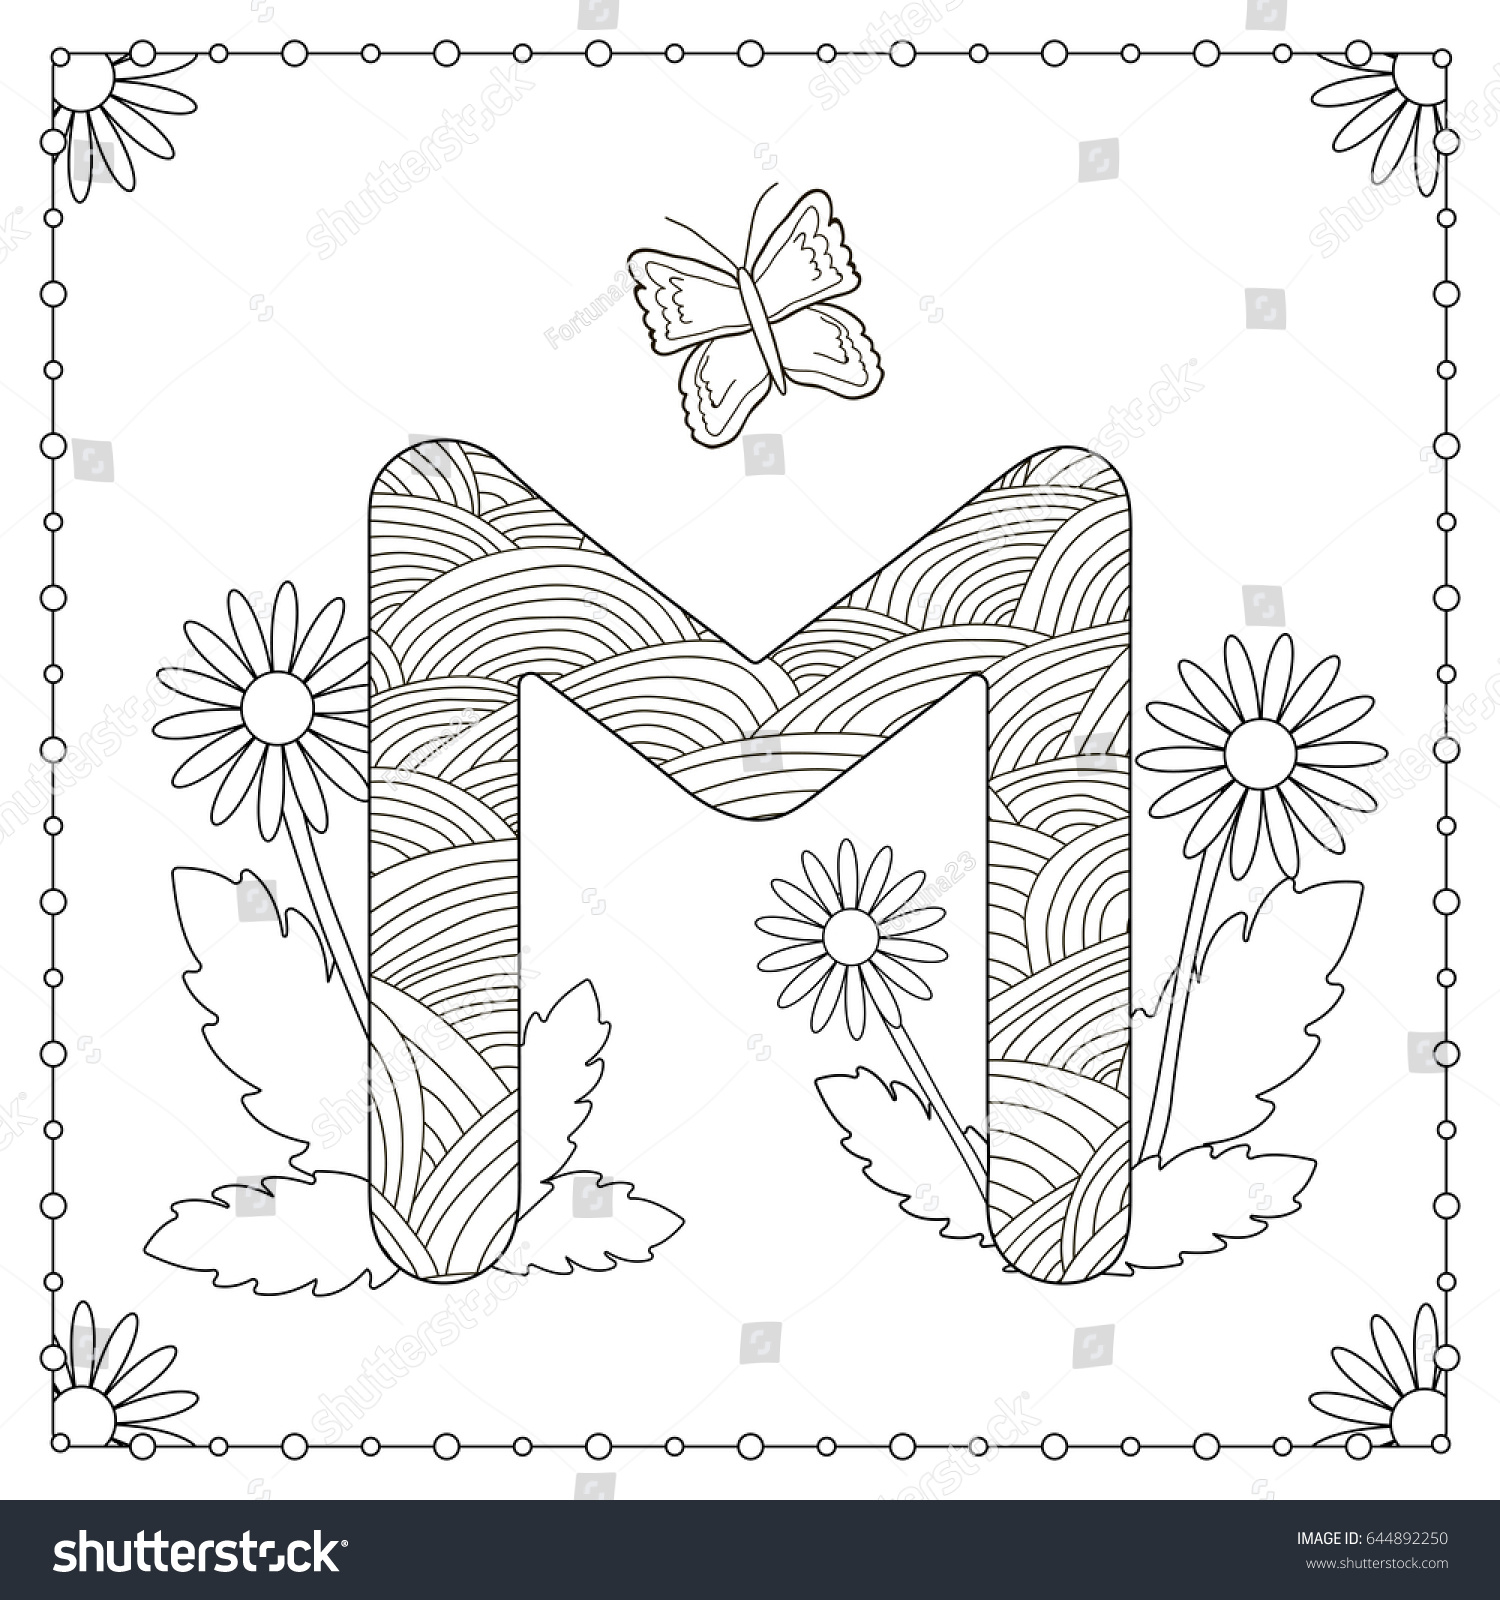 Alphabet Coloring Page Capital Letter M Stock Vector (Royalty Free ...